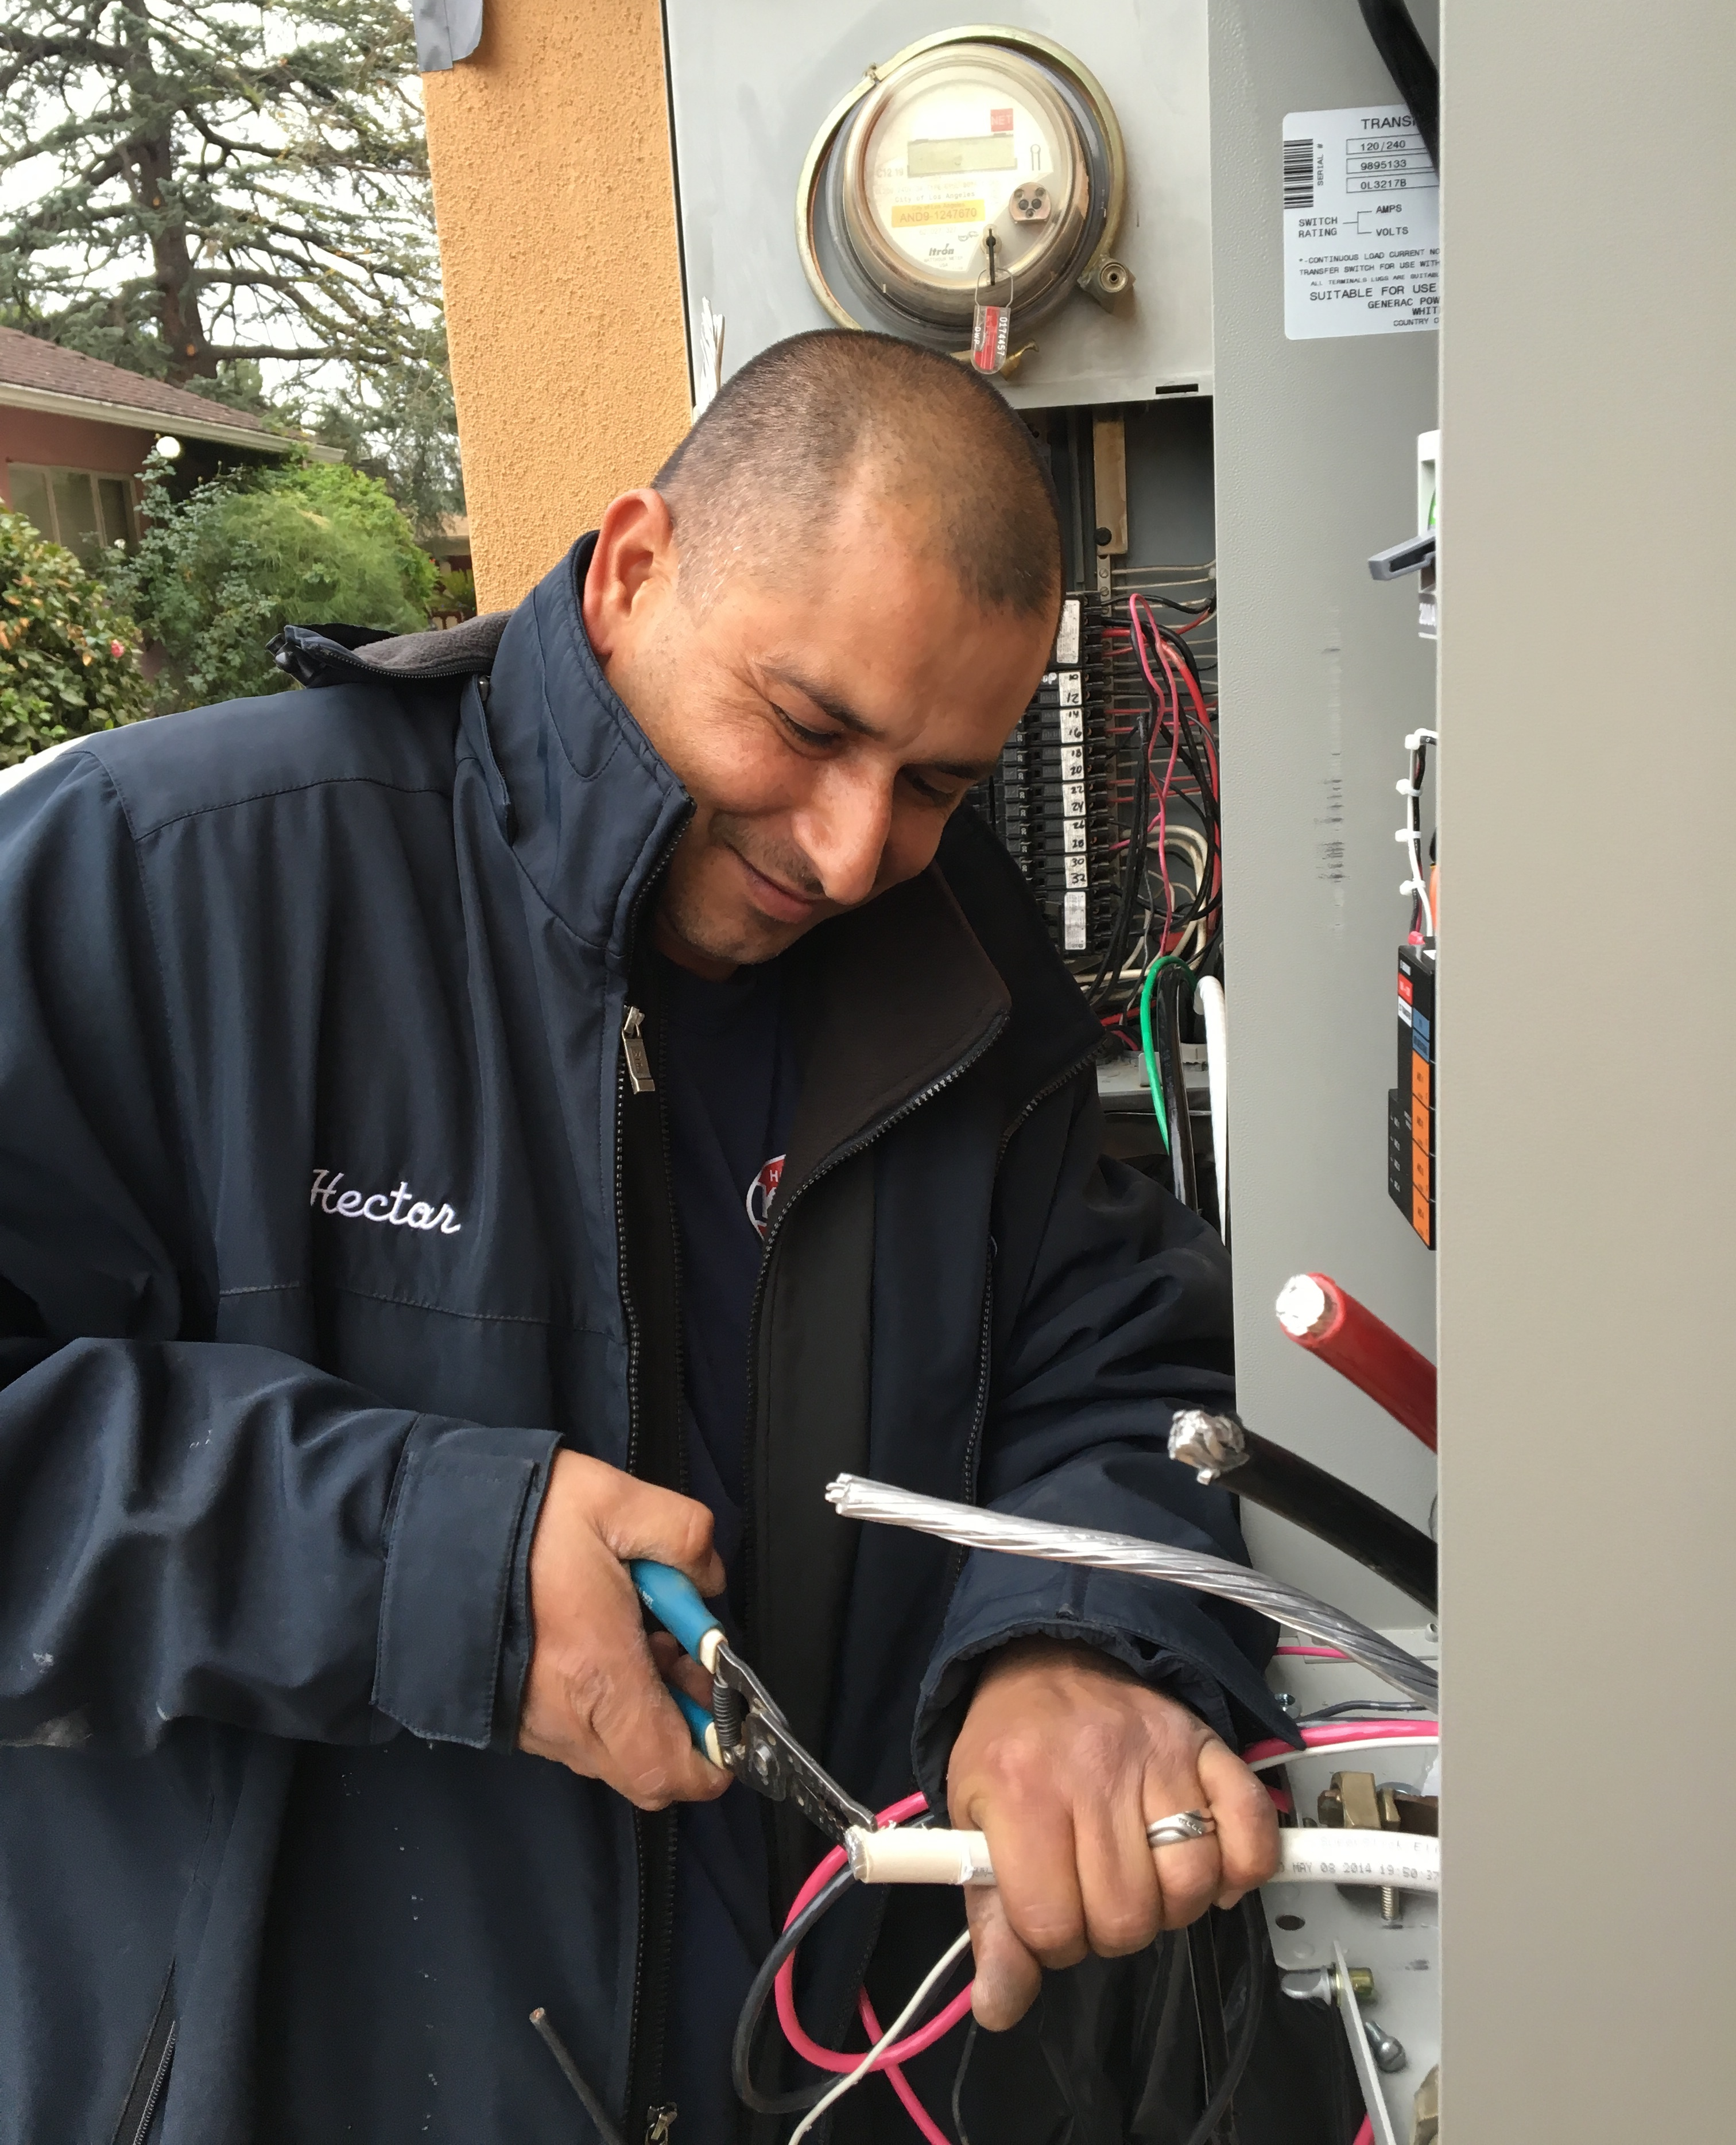 Electrical Repairs For A Safer Home Kilowatt Wiring On How To Connect From House Panel The System Is Essential Daily Life In And Keeping Circuits Wires Panels Connections Appliances